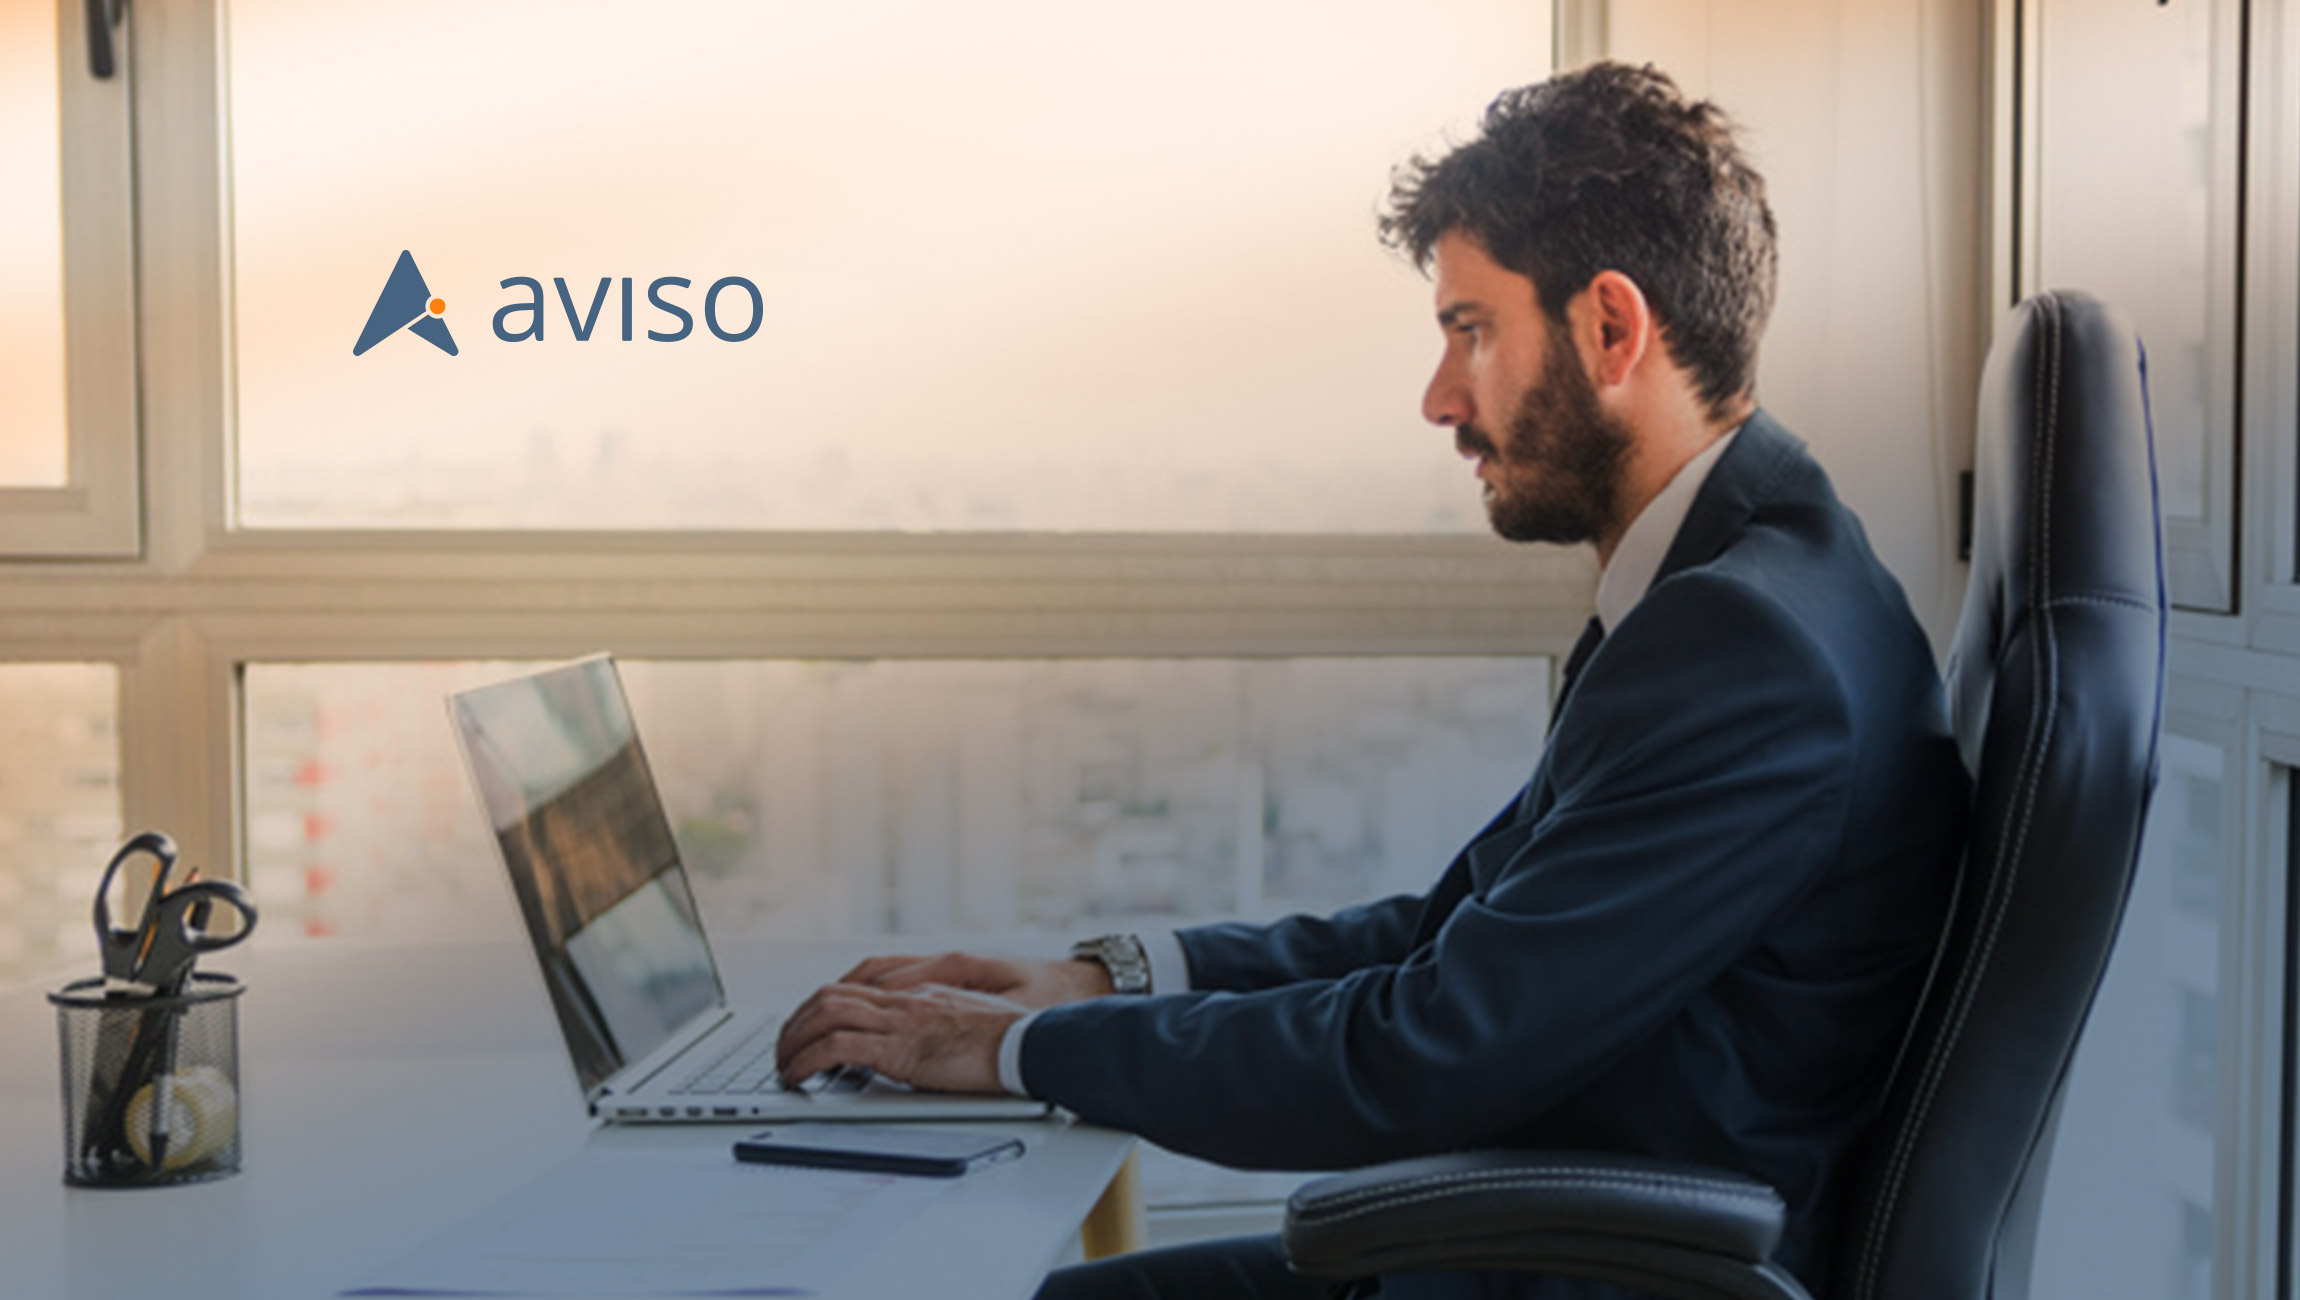 Aviso Achieves Record-High Accuracy Rates for AI-Powered Sales Predictions